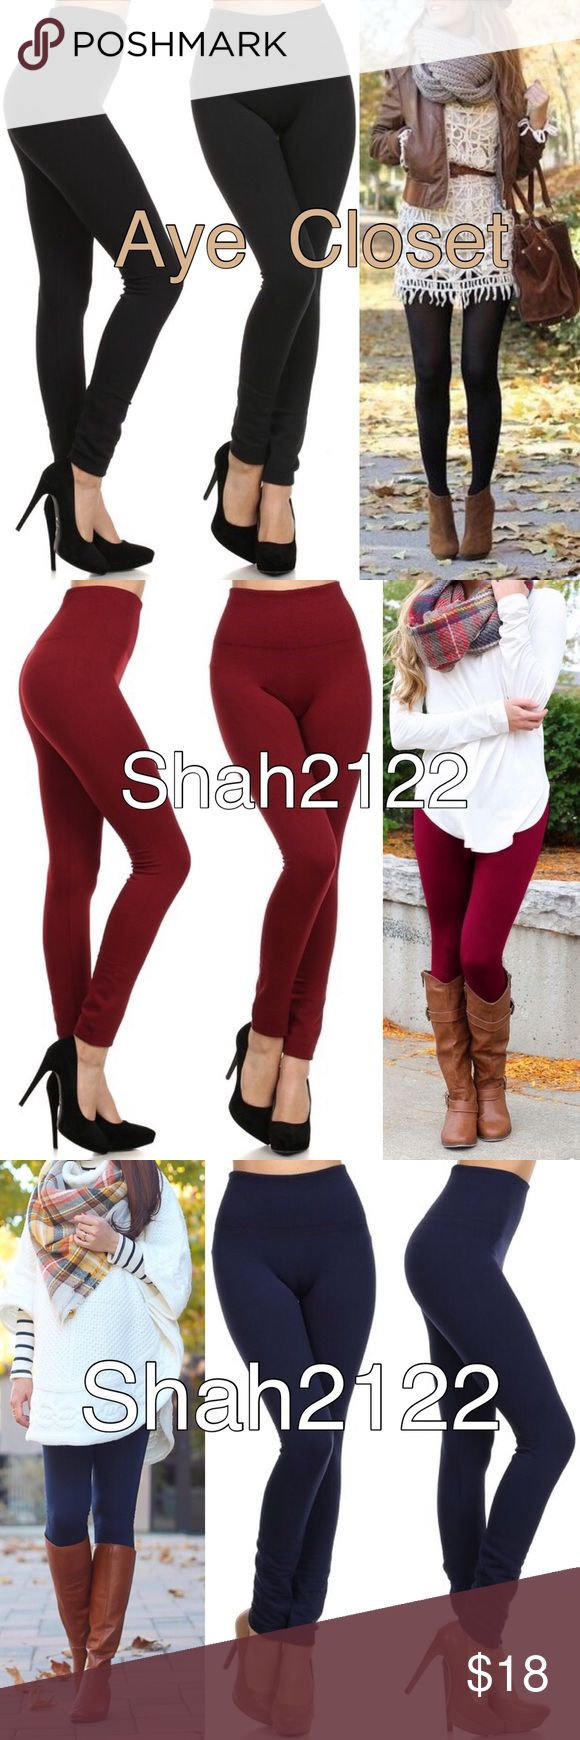 """BLACK fleece lined leggings New OS ONE SIZE FLEECE LINNED leggings. Stretch to fit (Plenty of stretch). Thick not opaque. 2.5-3"""" wide High waisted band.perfect solid, basic essential leggings.  Polyester, spandex blend. ‼️Also available in Black, burgundy, charcoal gray, navy blue, and sand in my closet TAG  SAYS OS(one size fits most), best fits S-L(2-14) ‼️Sizes options added  for search purposes‼️ Boutique Pants Leggings"""